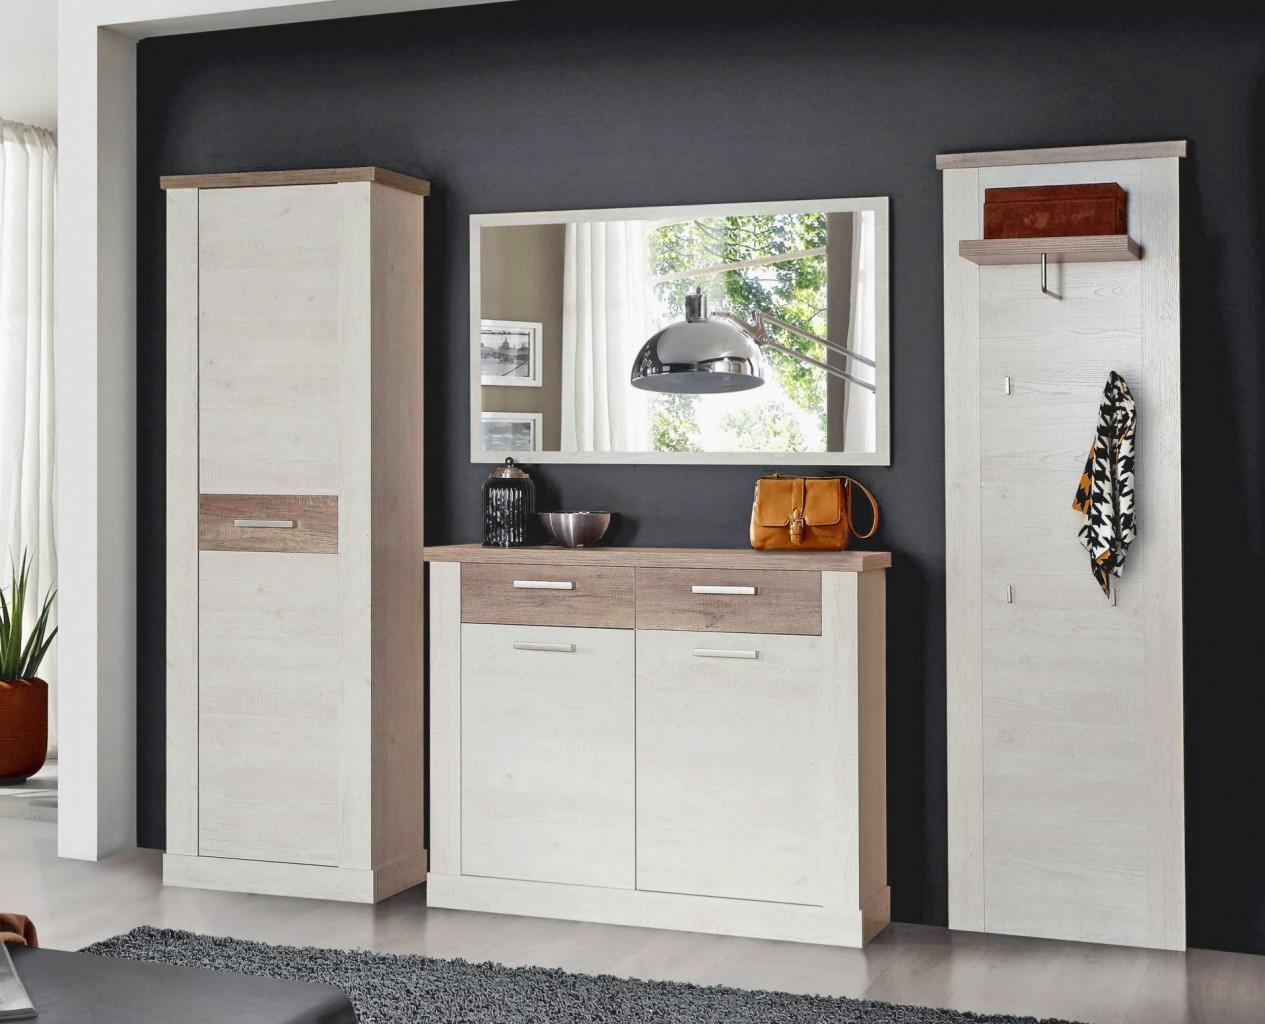 garderobe duro 4 tlg komplett set pinie wei absetzungen eiche antik. Black Bedroom Furniture Sets. Home Design Ideas